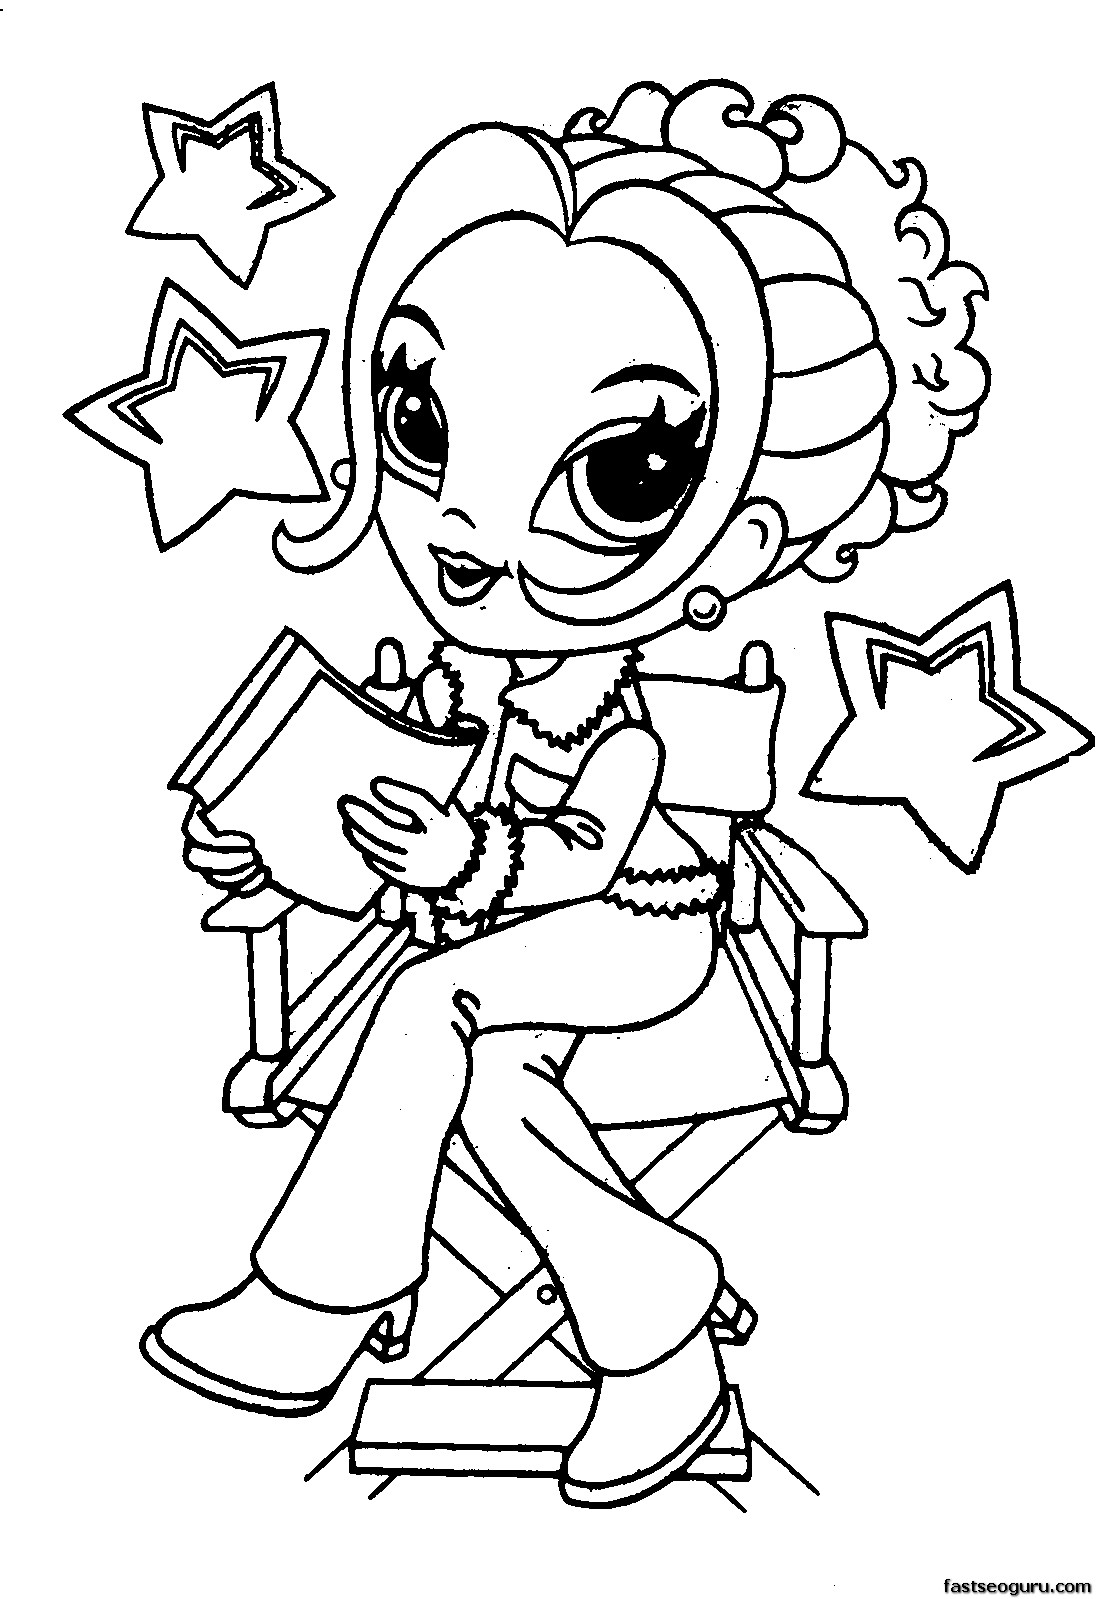 colouring pictures girls anime coloring pages best coloring pages for kids pictures colouring girls